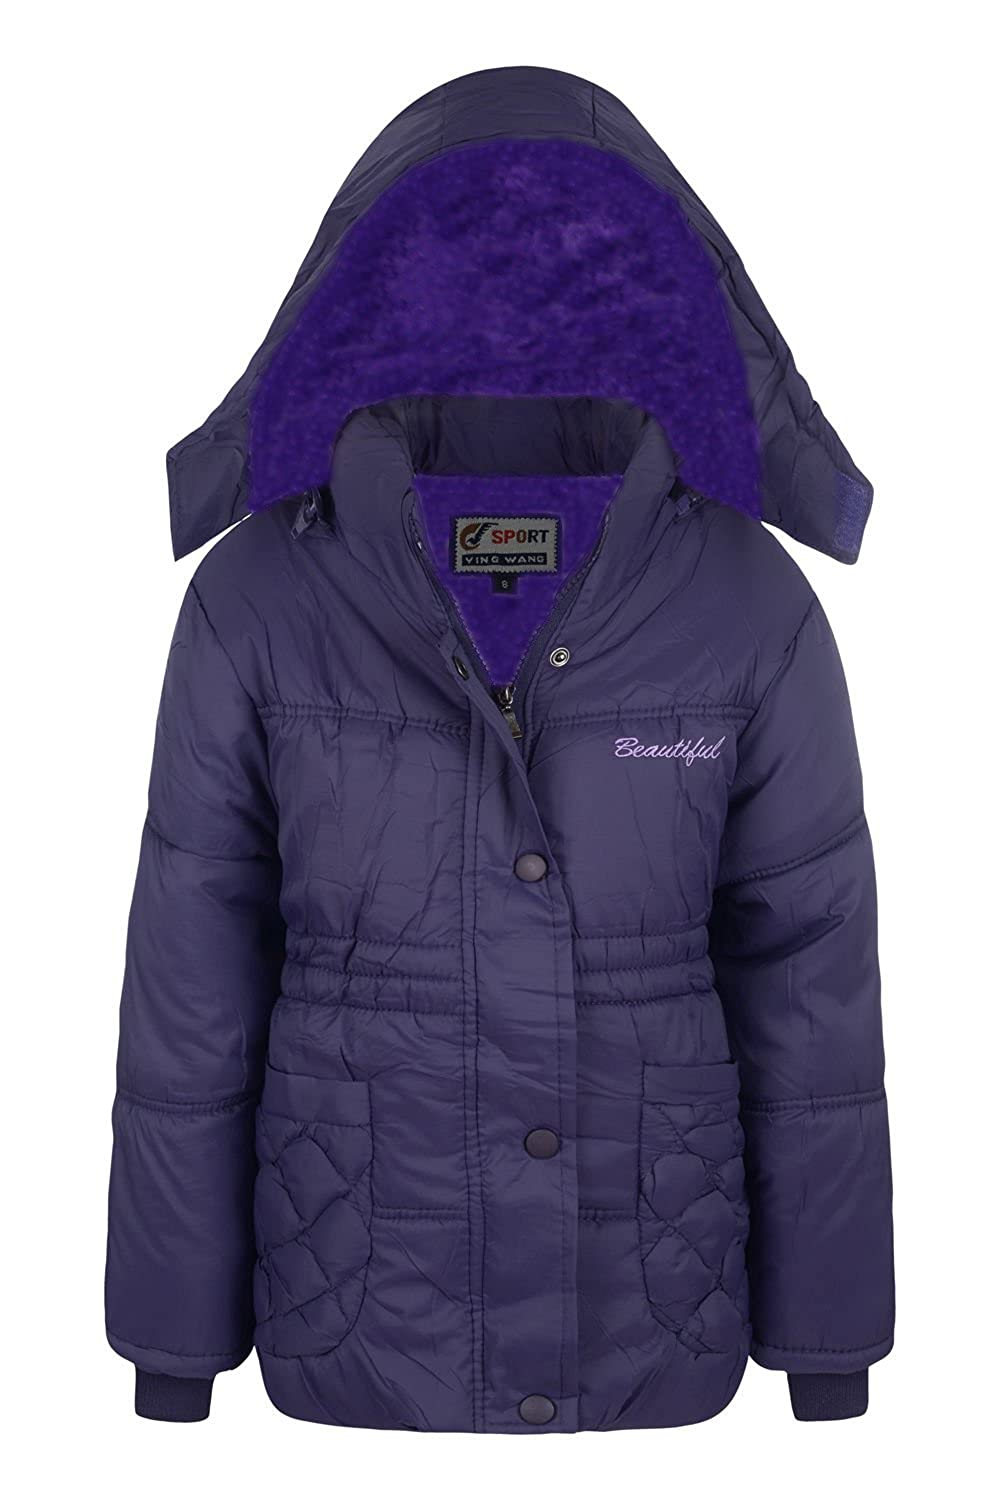 a40070175f42 New Girls Coat School Padded Hooded Jacket Age 3 5 6 8 9 10 13 Years ...